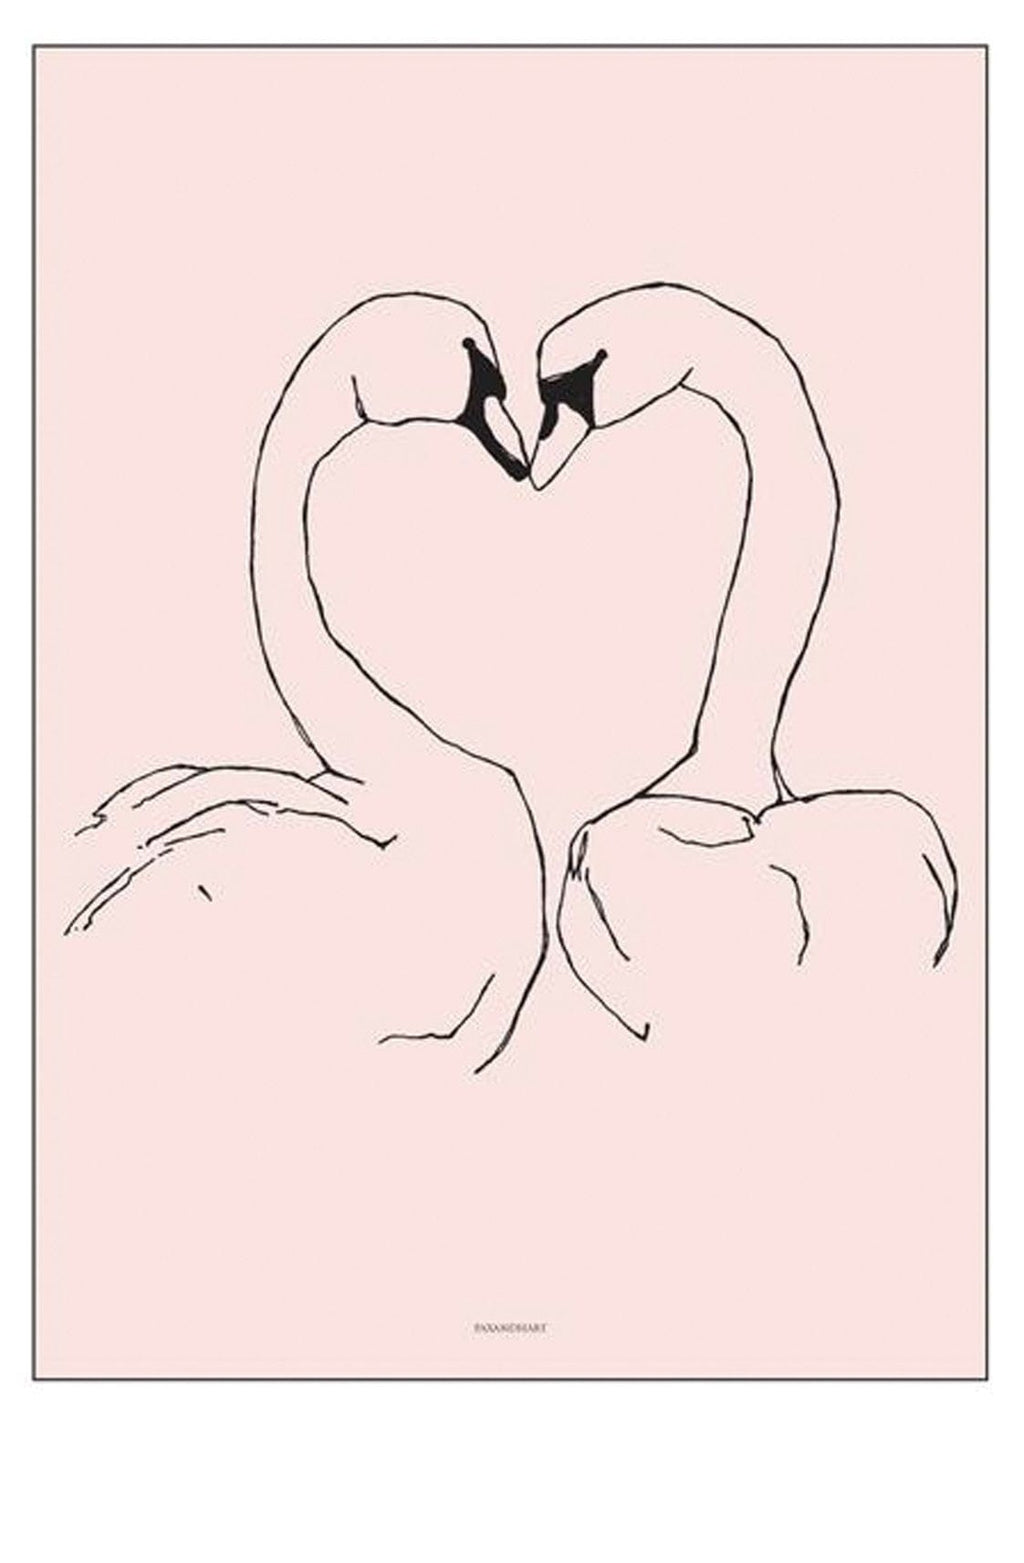 PAX AND HART SUNDAY LOVE BIRDS SWAN POSTER, 50 x 70CM - Hello Little Birdie